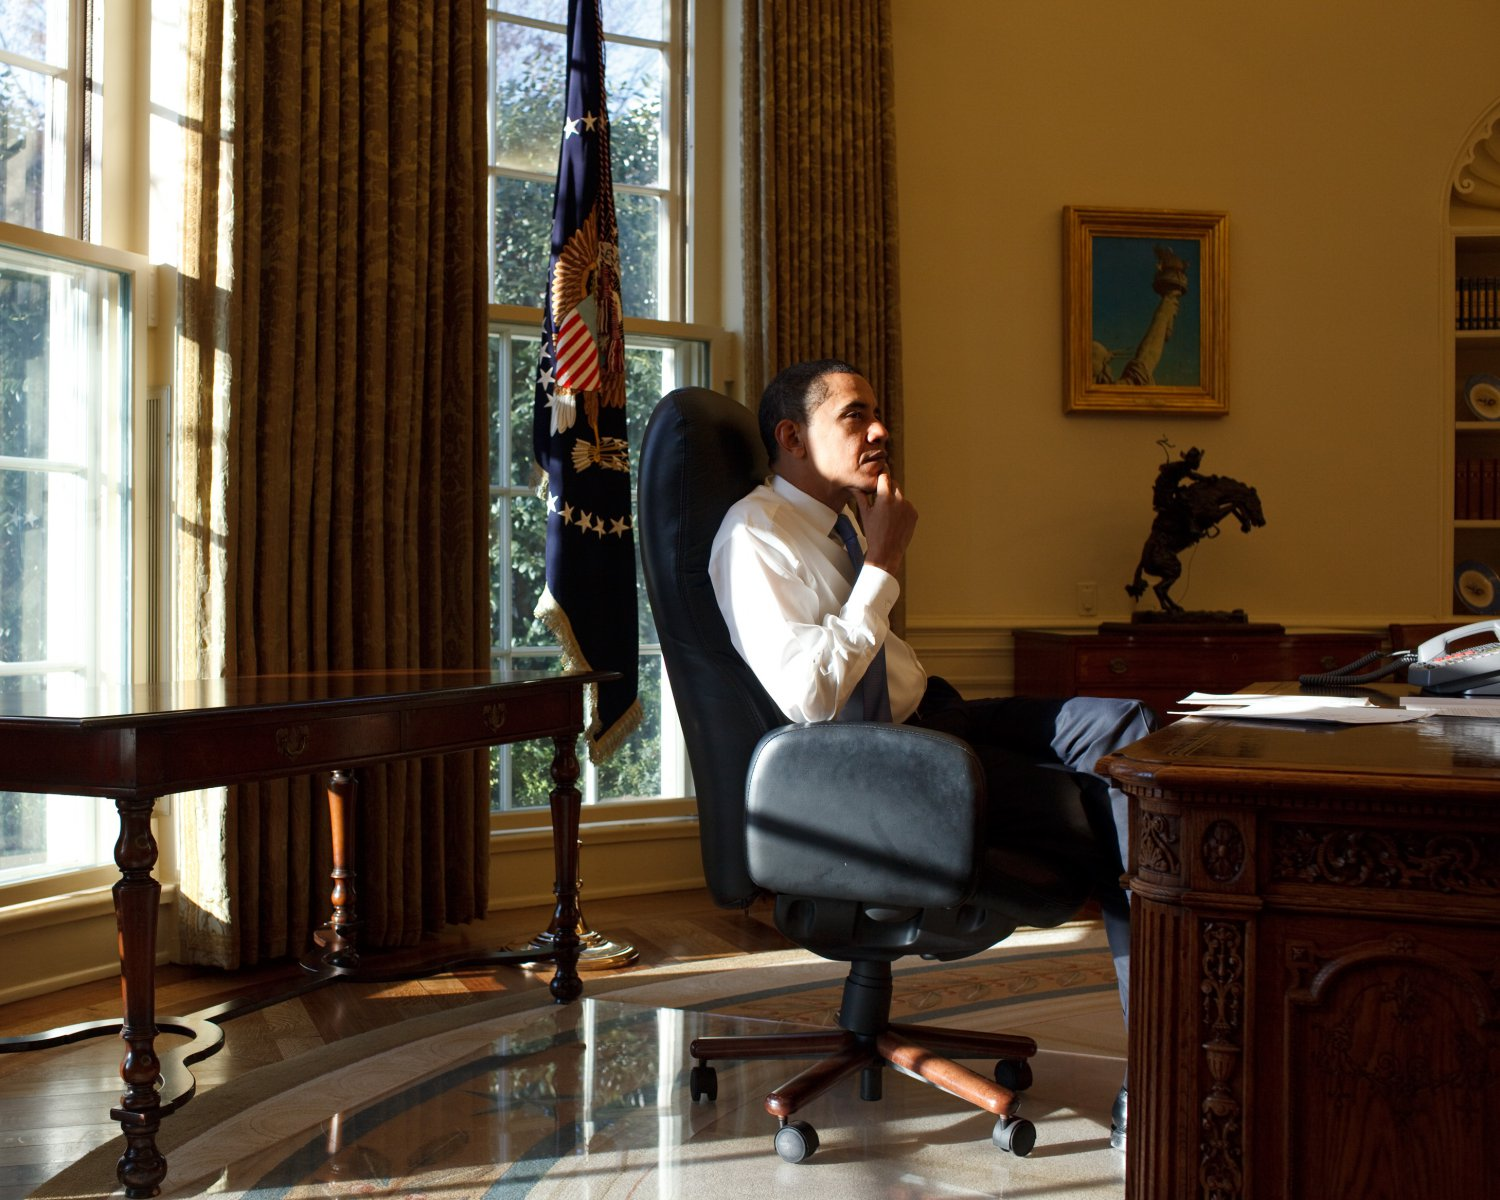 BARACK OBAMA IN THE OVAL OFFICE ON 1ST DAY OF HIS FIRST TERM 8X10 PHOTO (ZY-392)